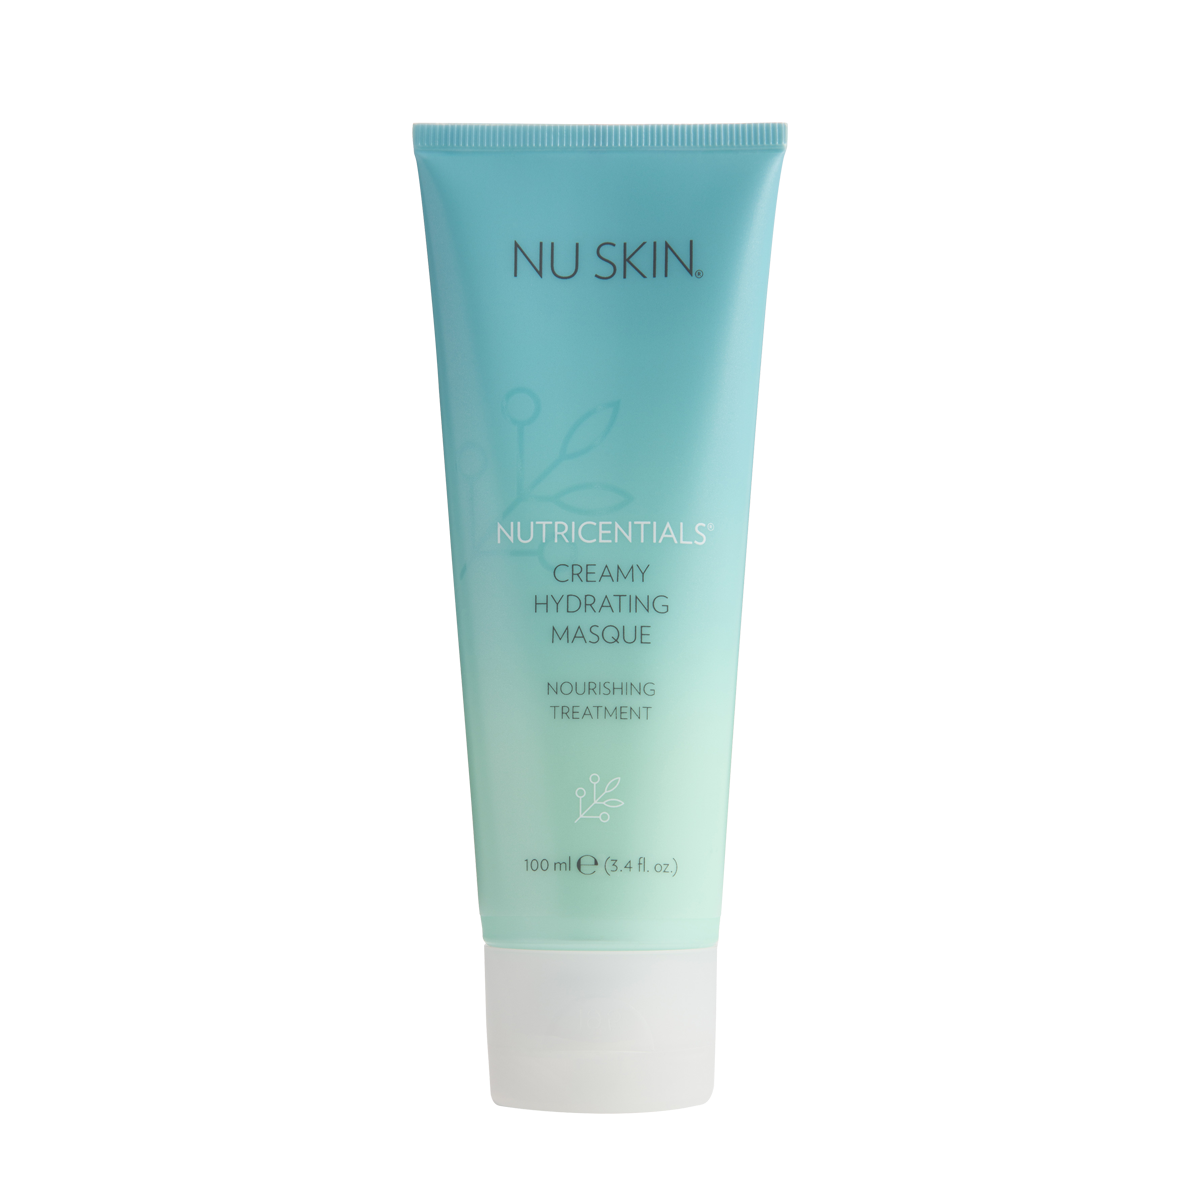 Nu Skin Products: Creamy Hydrating Masque